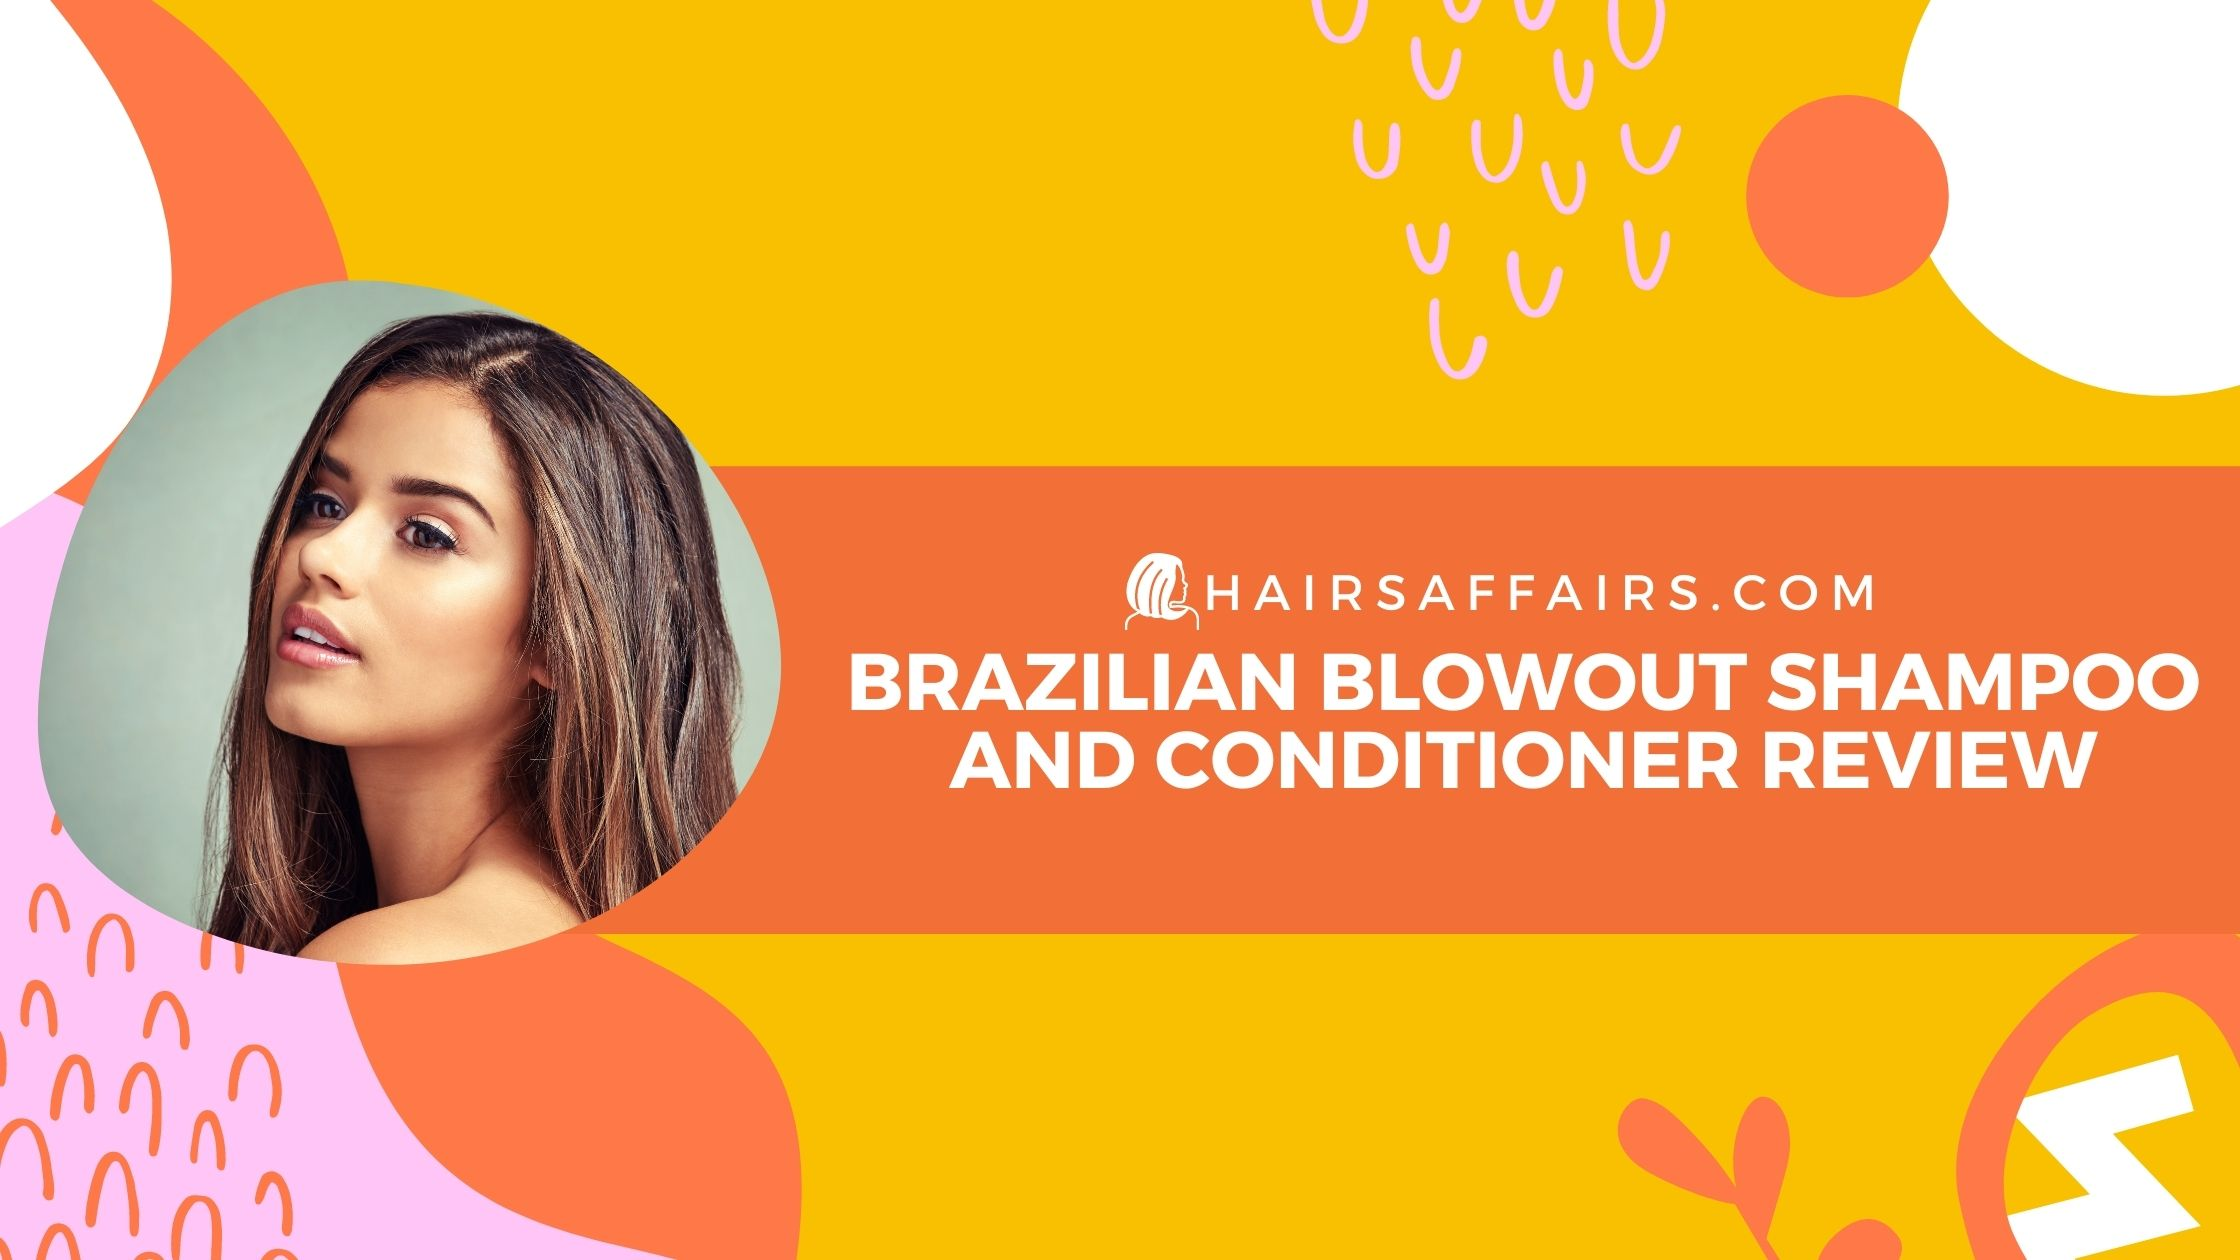 brazilian blowout shampoo and conditioner review